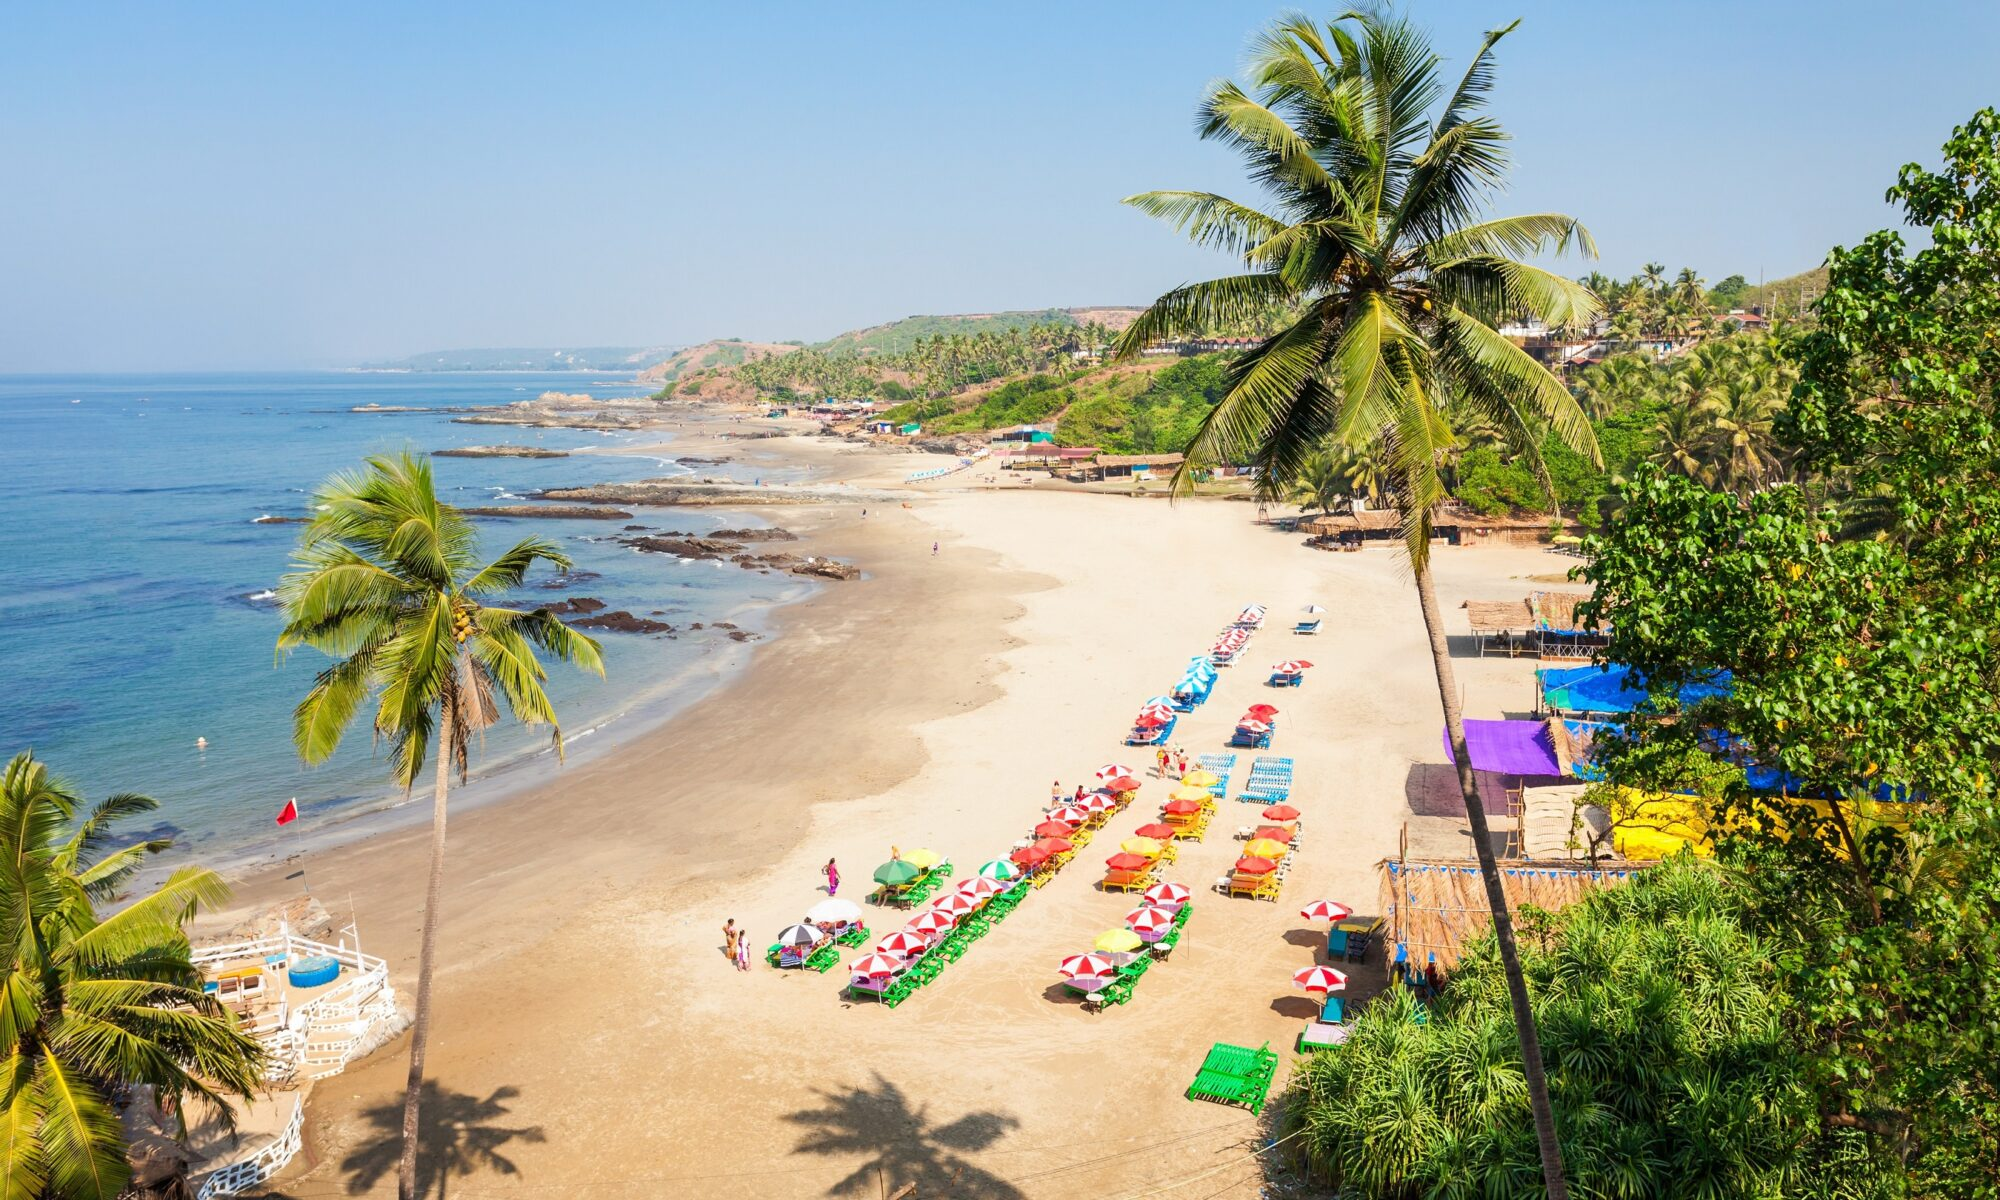 Hotels in Goa India